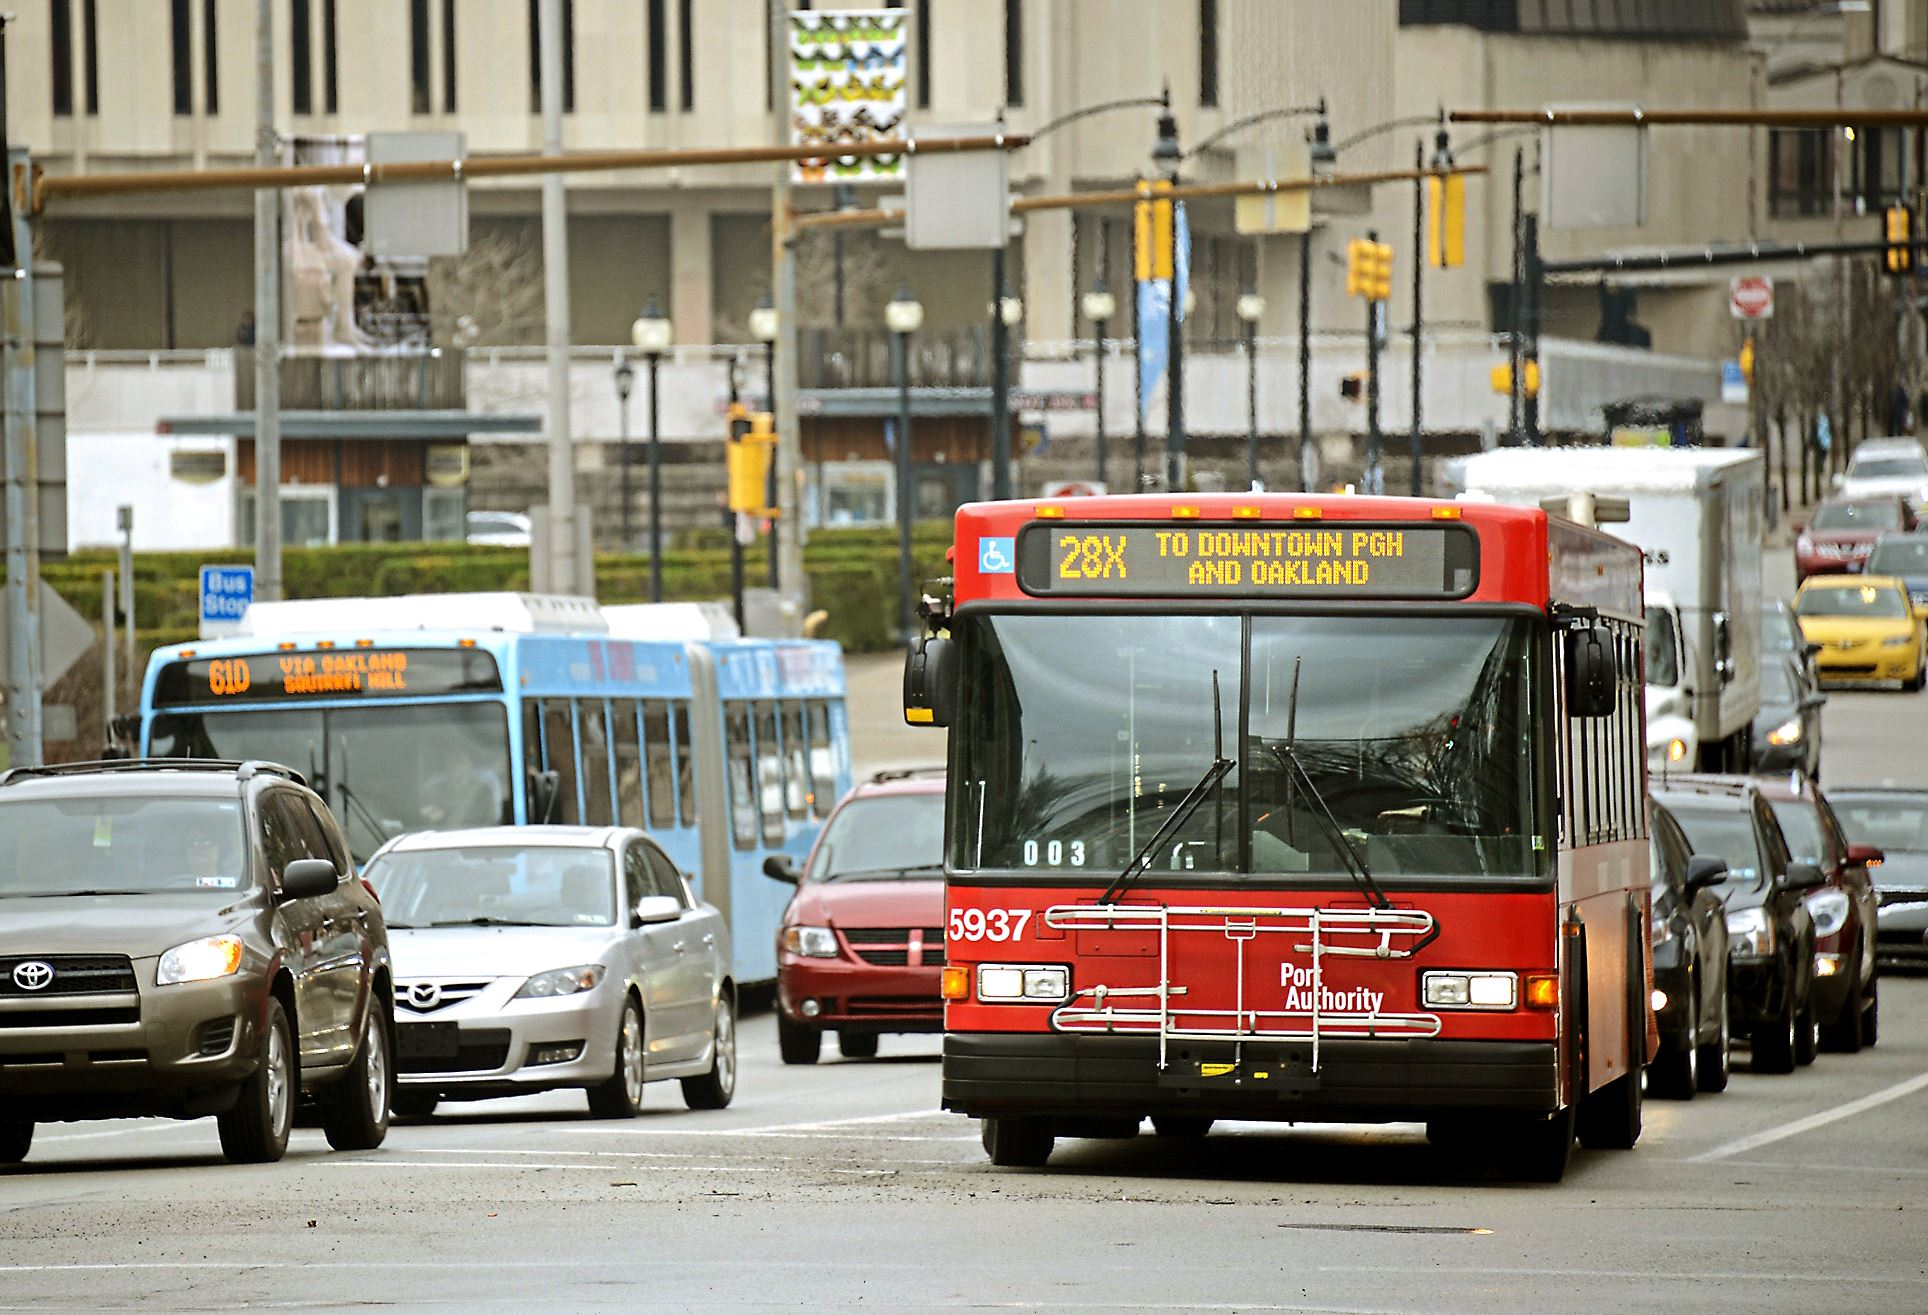 Port authority continues to hear pleas for expanded bus service pittsburgh post gazette - Port authority pittsburgh ...